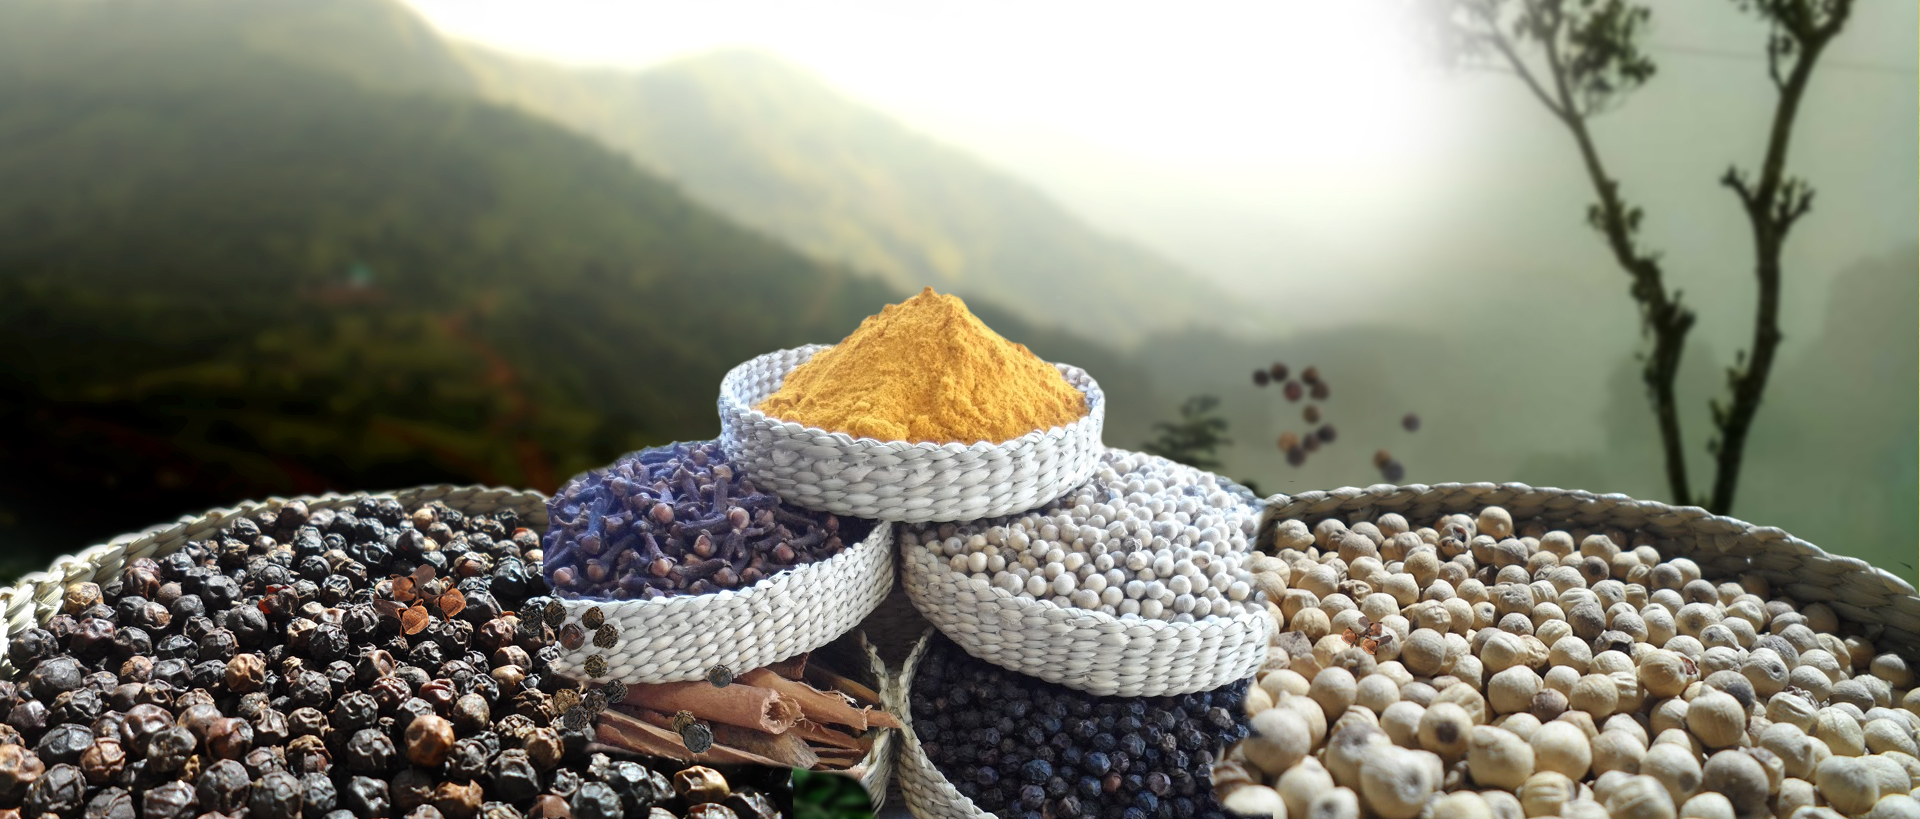 India's foremost organic spice exporter